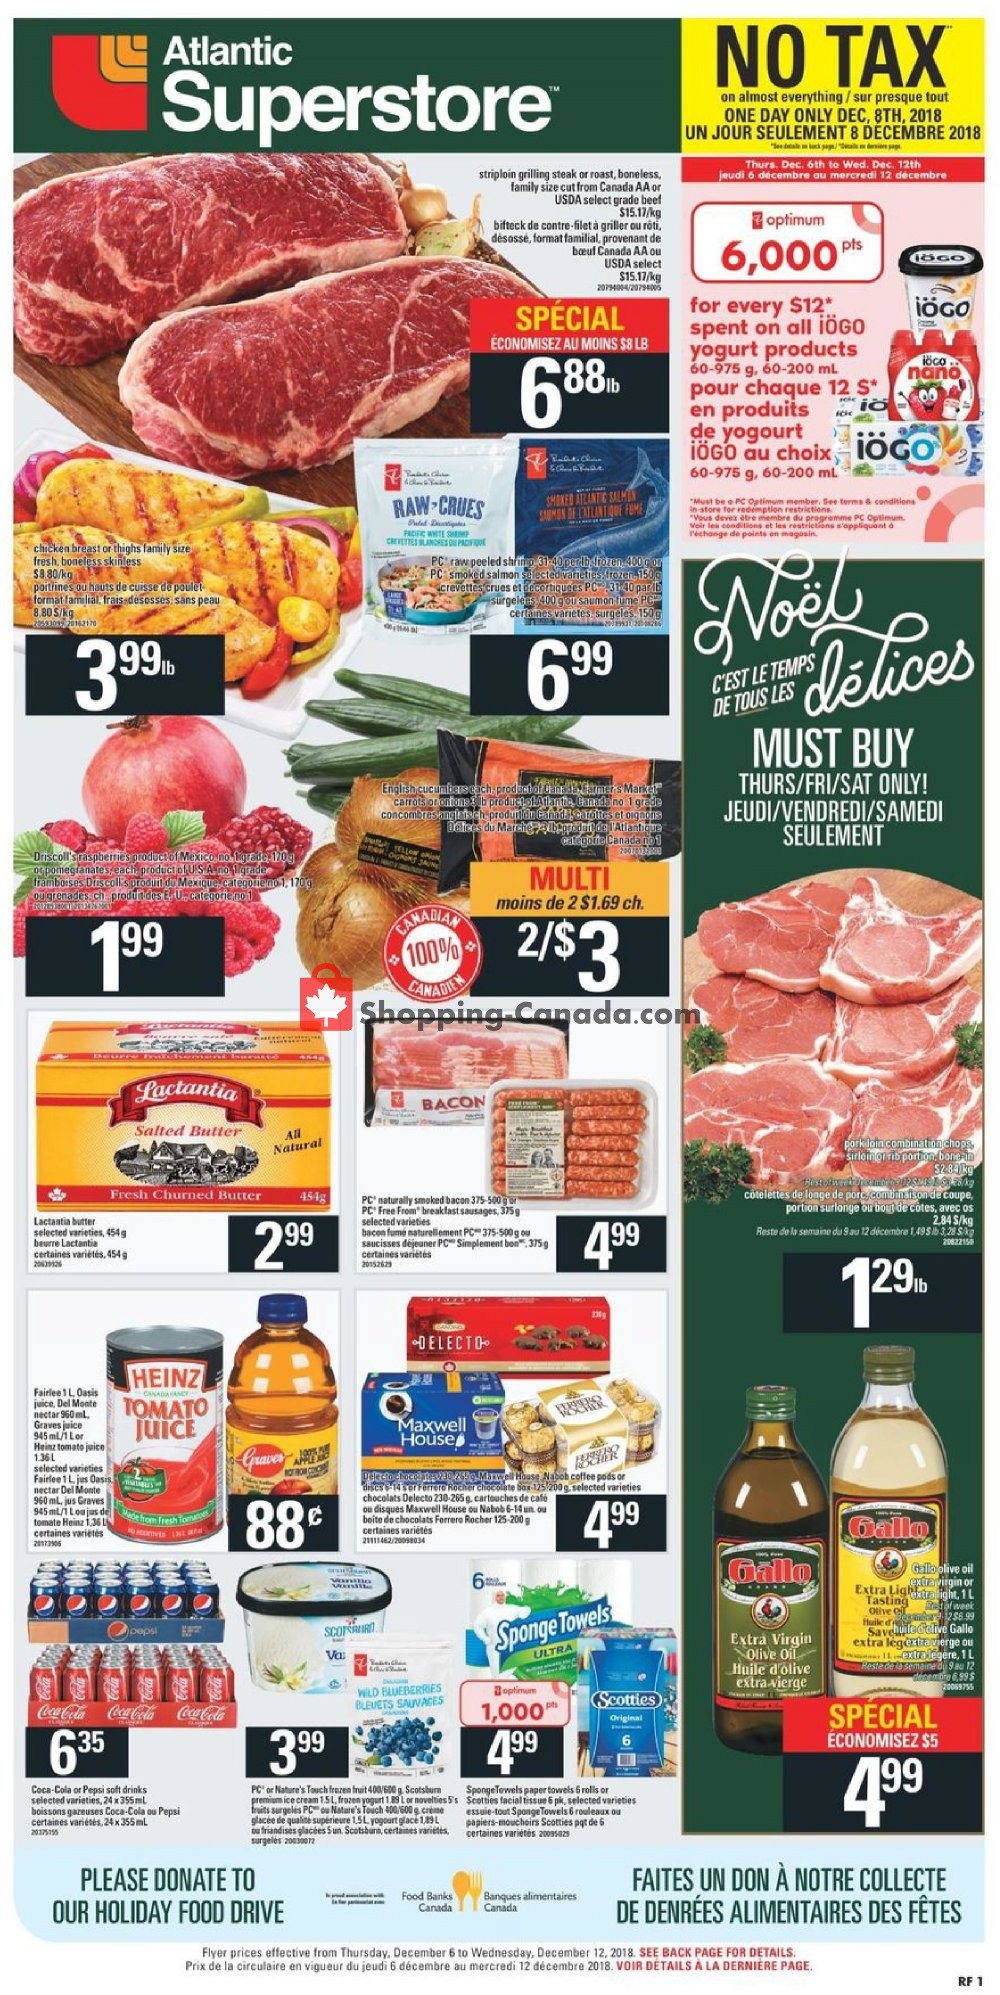 Flyer Atlantic Superstore Canada - from Thursday December 6, 2018 to Wednesday December 12, 2018